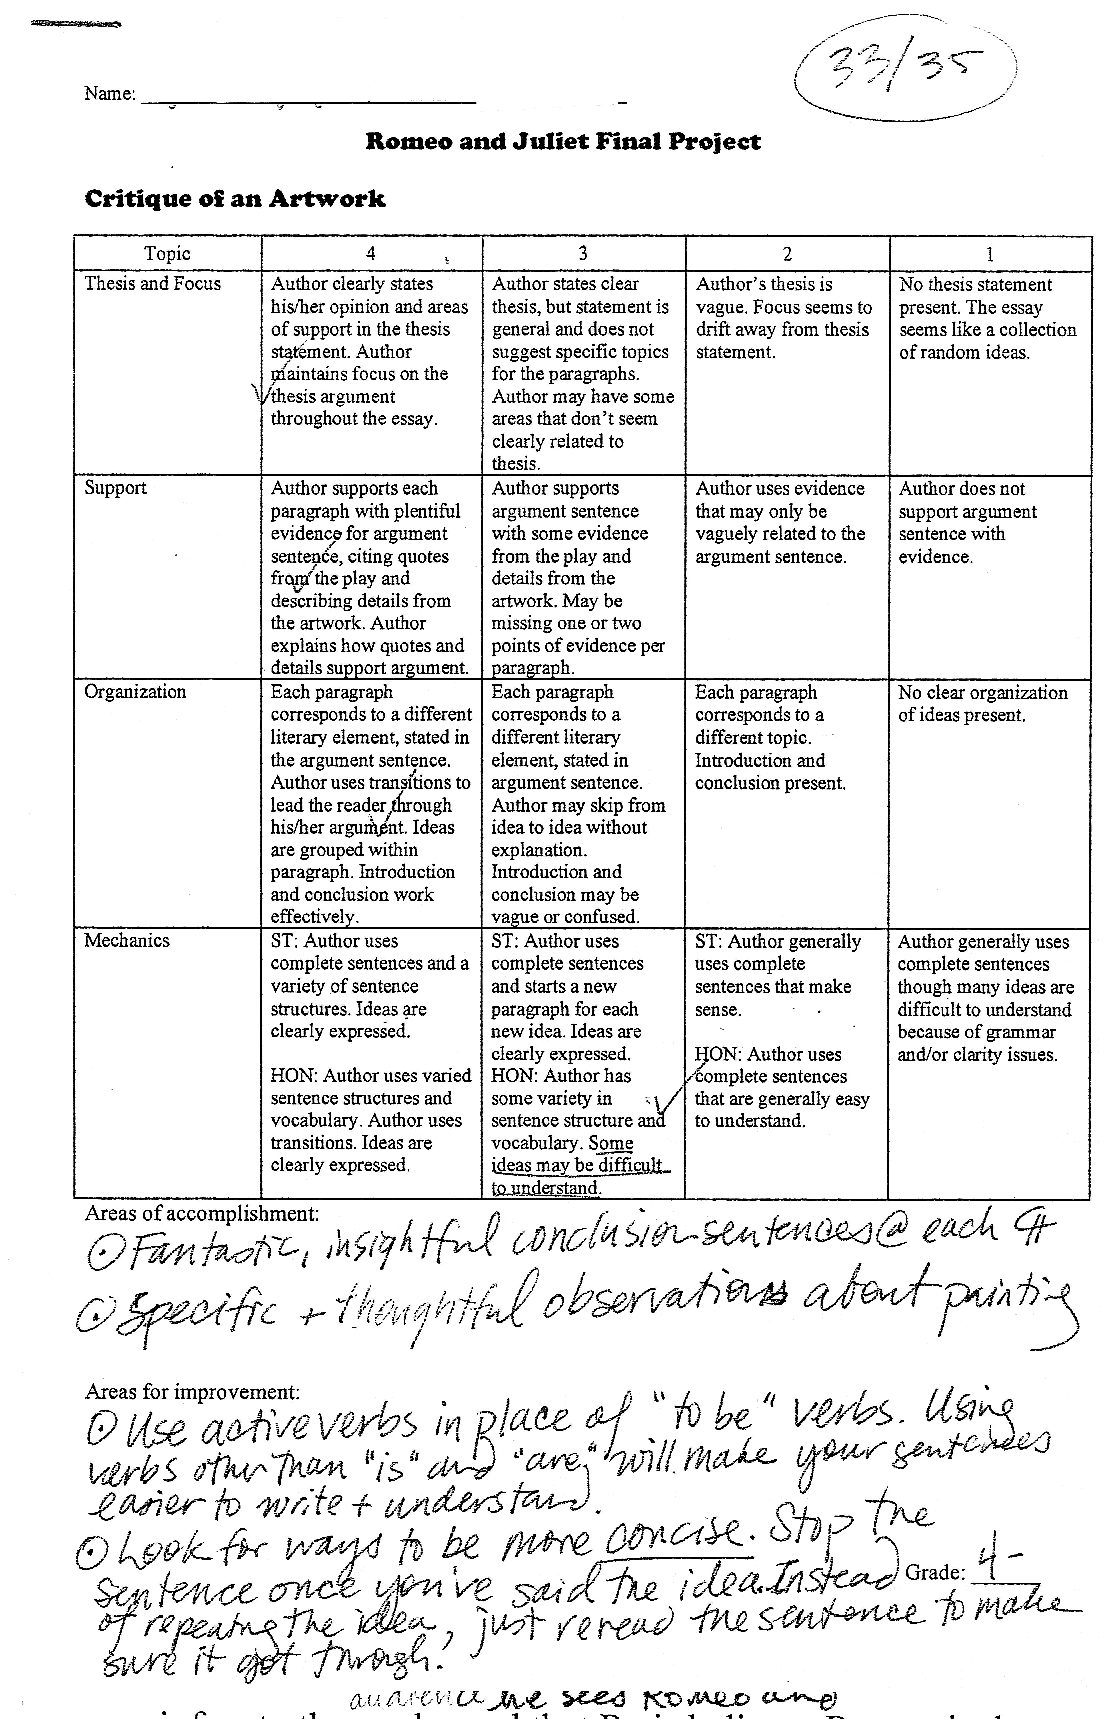 Etonnant Romeo And Juliet Essay Rubric